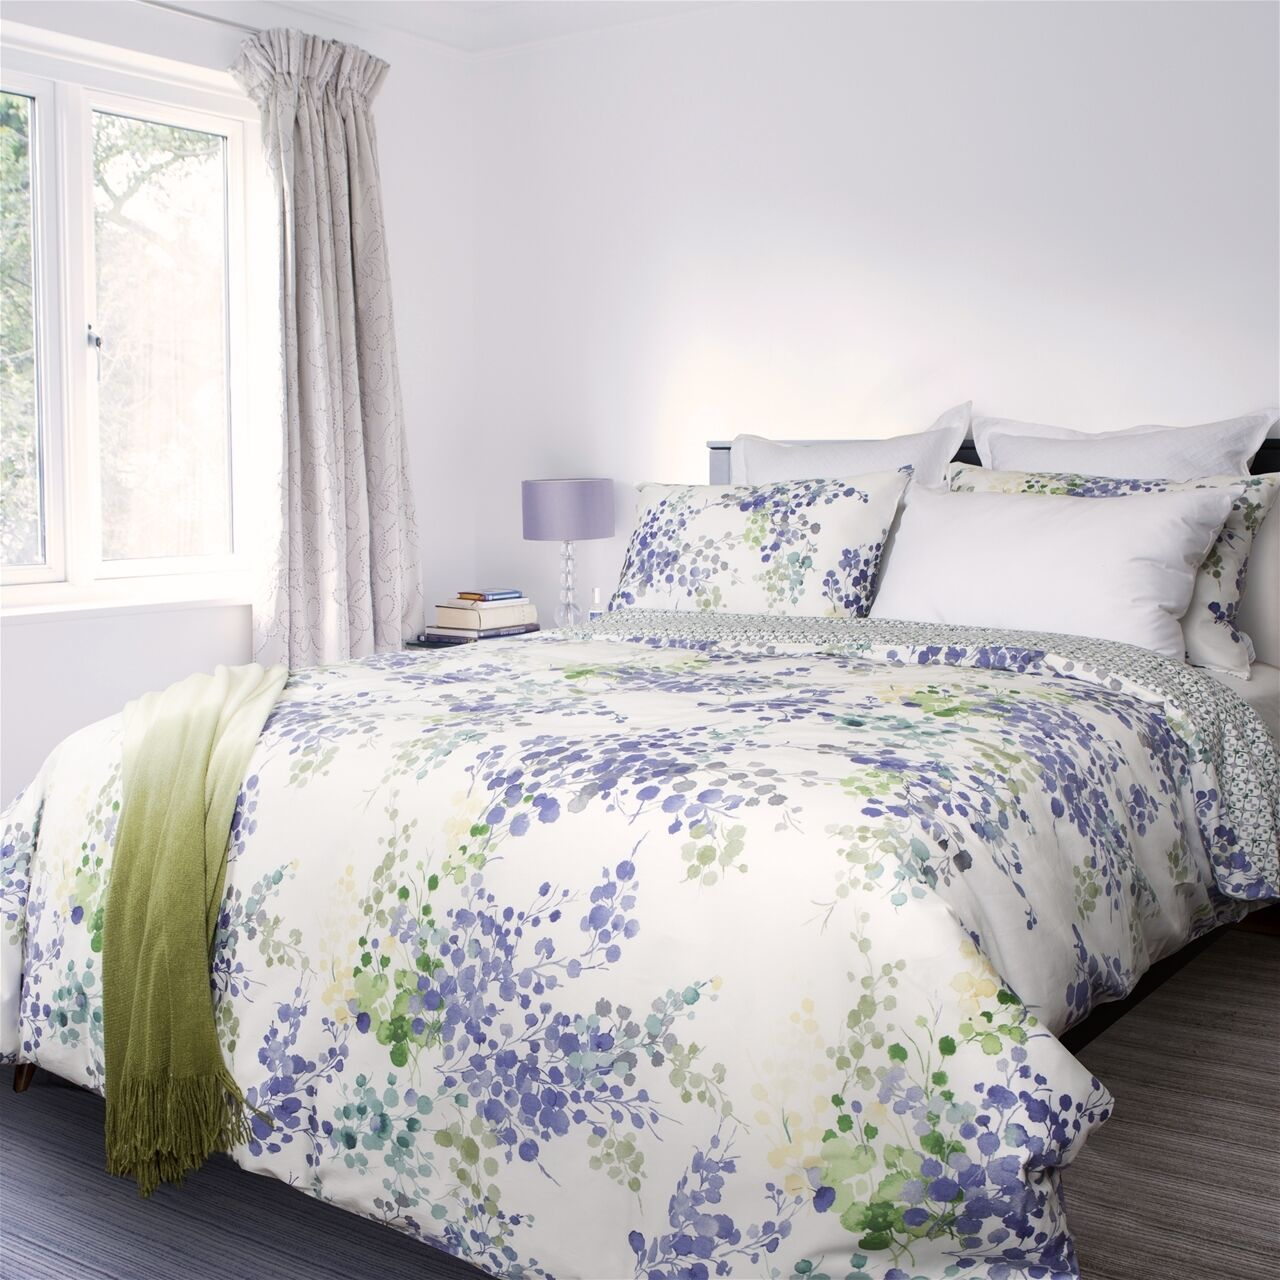 Heather Floral Printed Luxury 300TC 100% Cotton Sateen Duvet Cover Bed Set